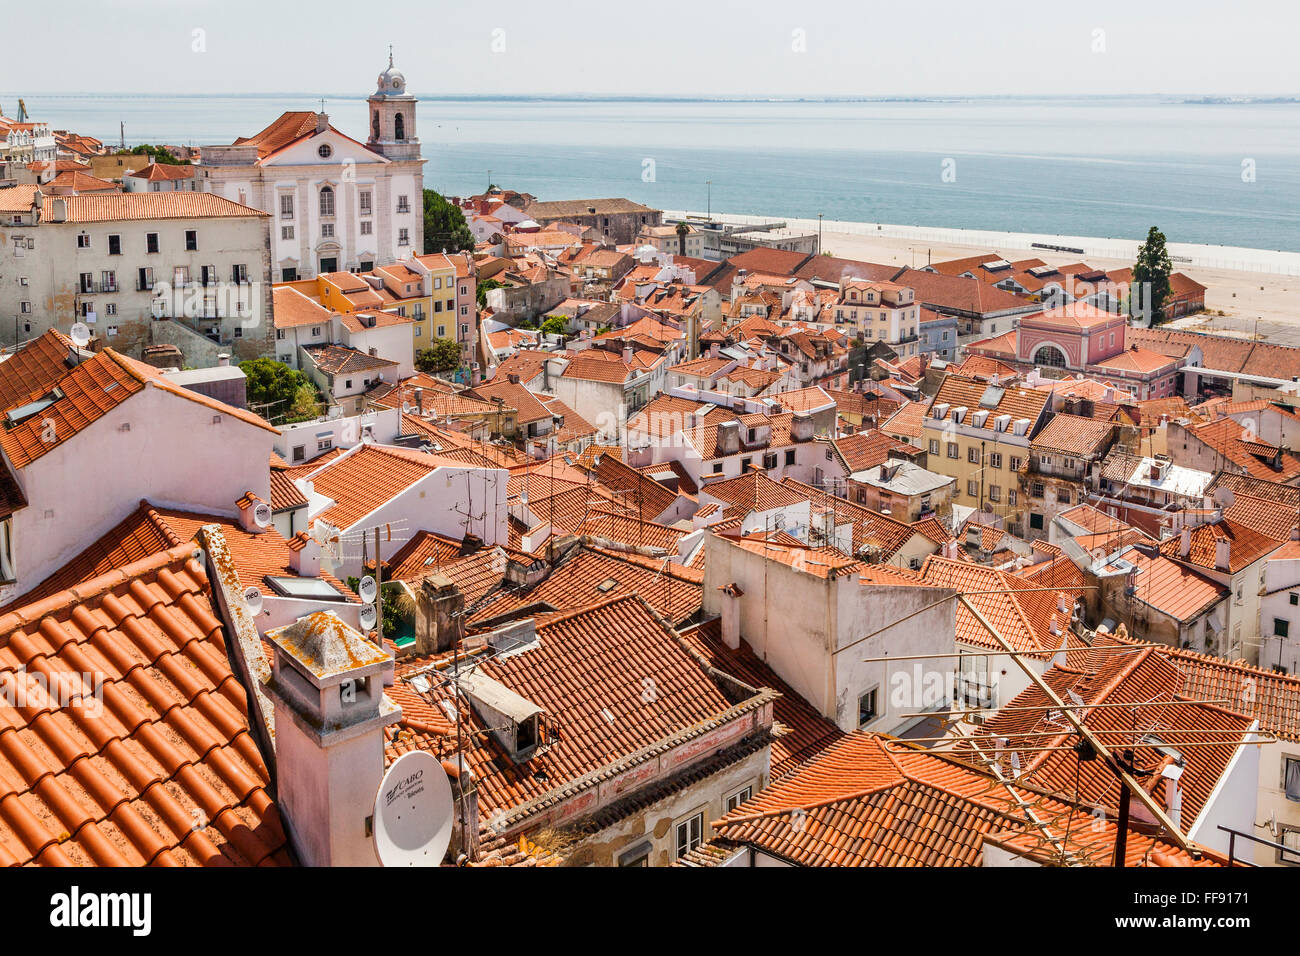 Portugal, Lisbon, view from Miradouro das Portas do Sol of the Tagus River and the roofs of the Lisbon neighbourhood - Stock Image